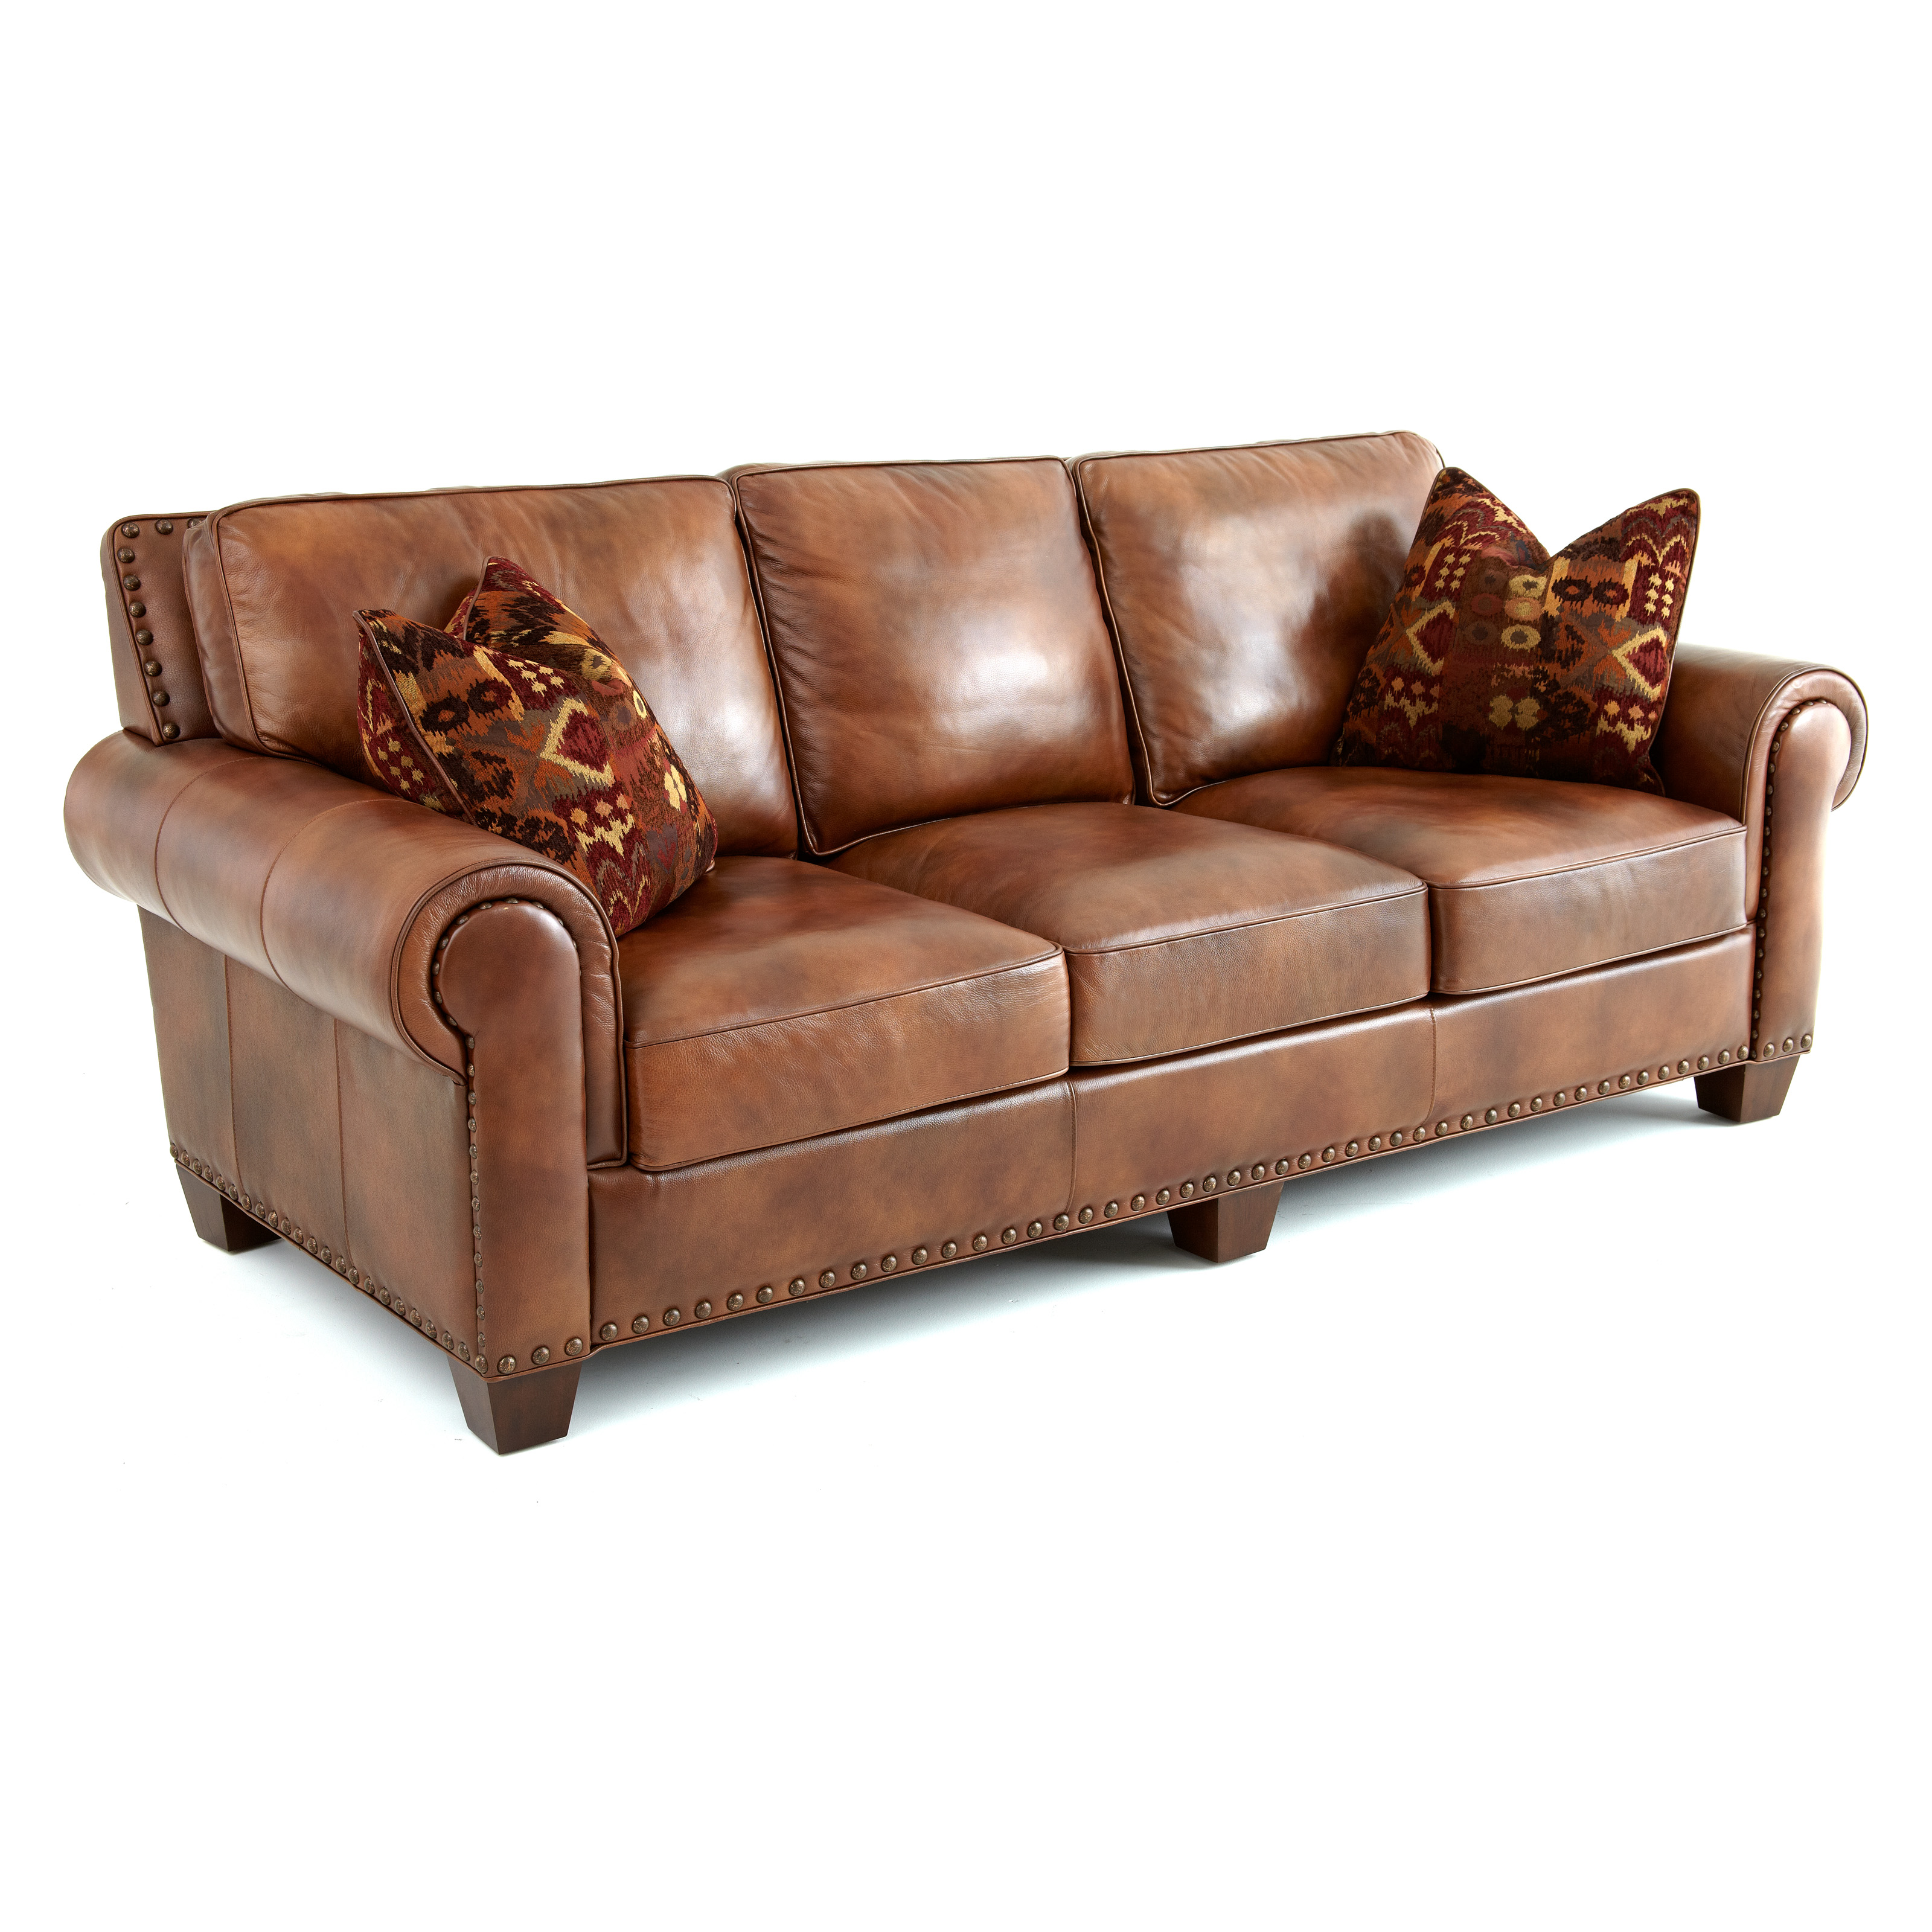 Decorative Pillows For Brown Leather Couch : Steve Silver Silverado Leather Sofa with 2 Accent Pillows - Caramel Brown - Sofas & Loveseats at ...